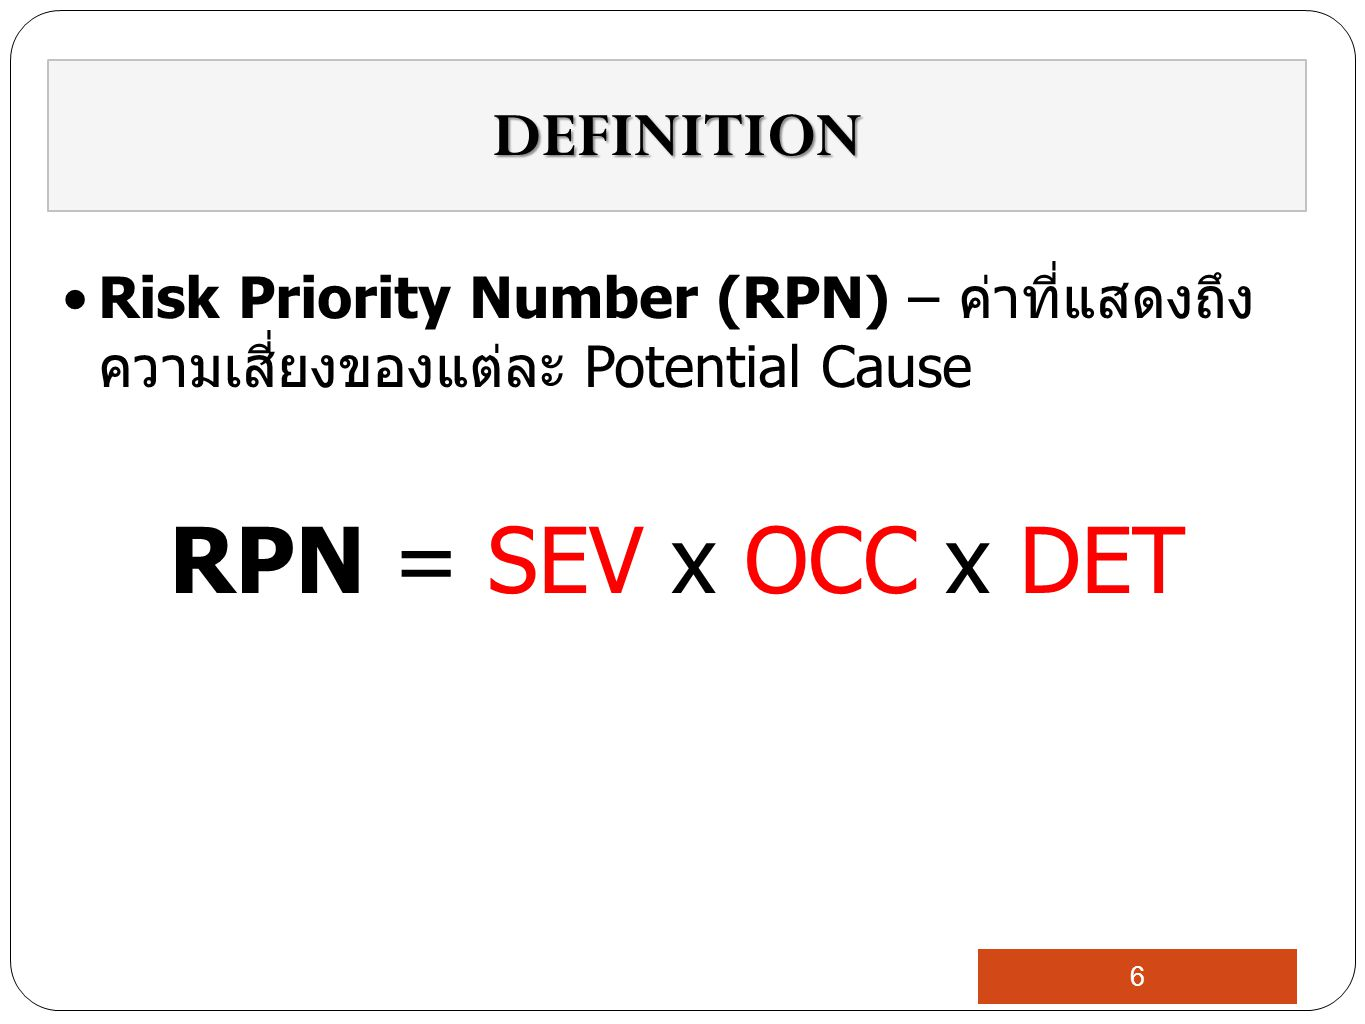 RPN = SEV x OCC x DET DEFINITION